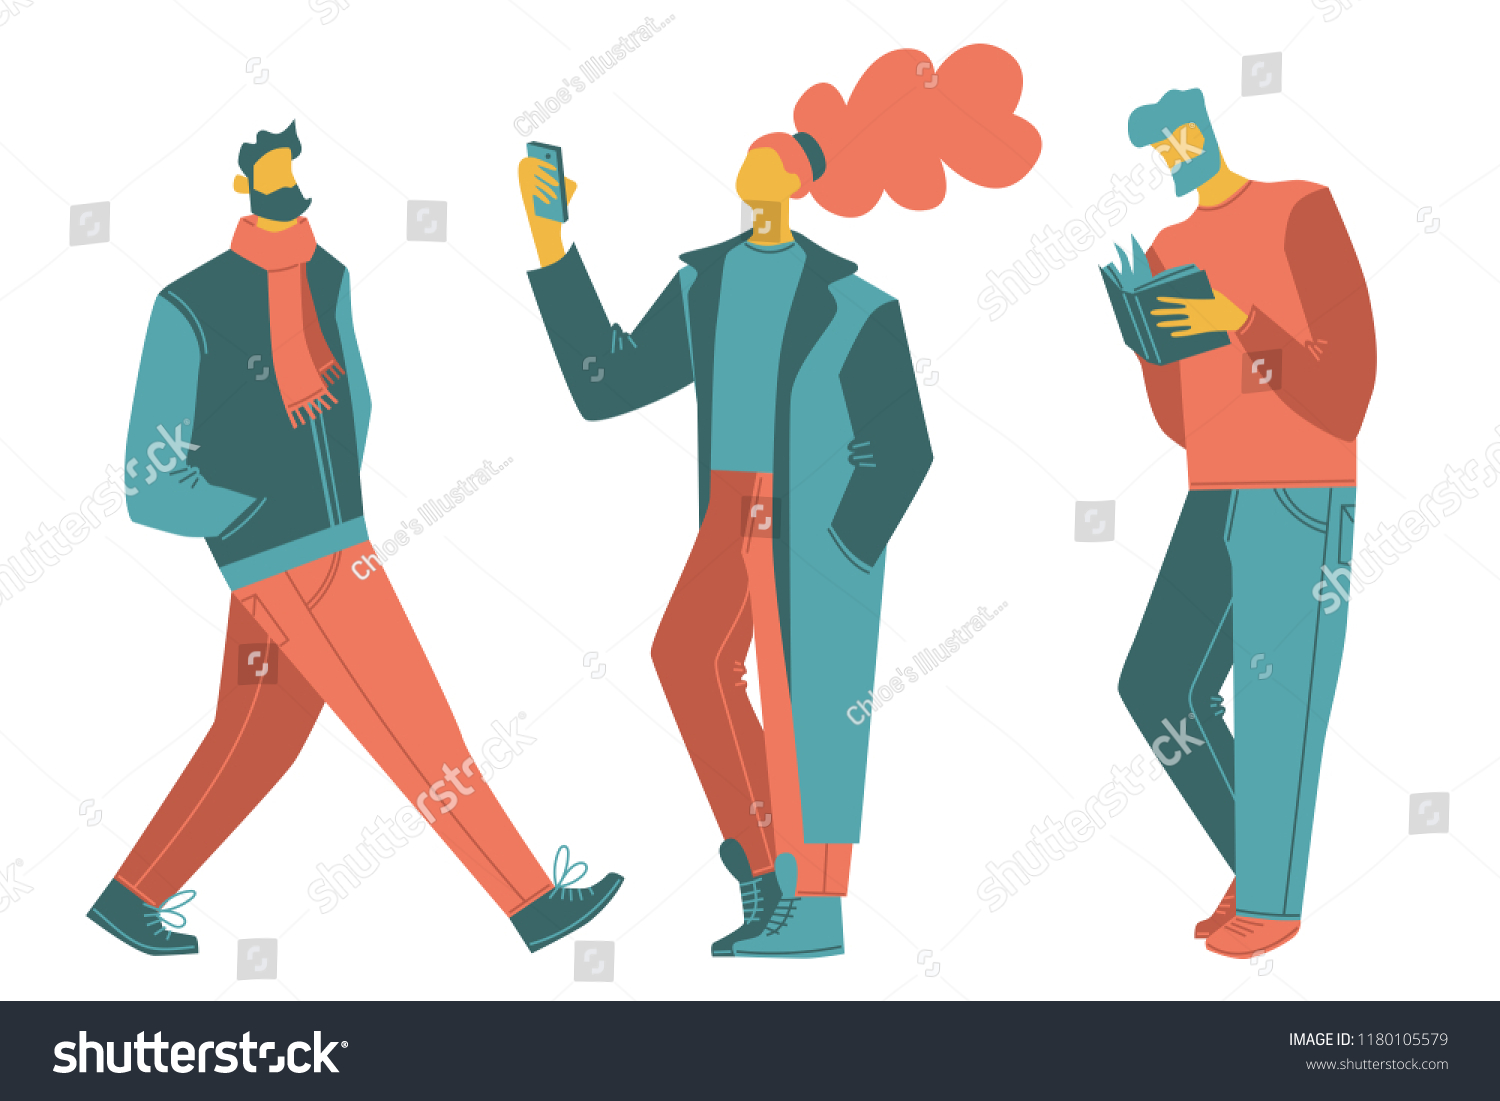 stock-vector-cartoon-vector-people-set-w